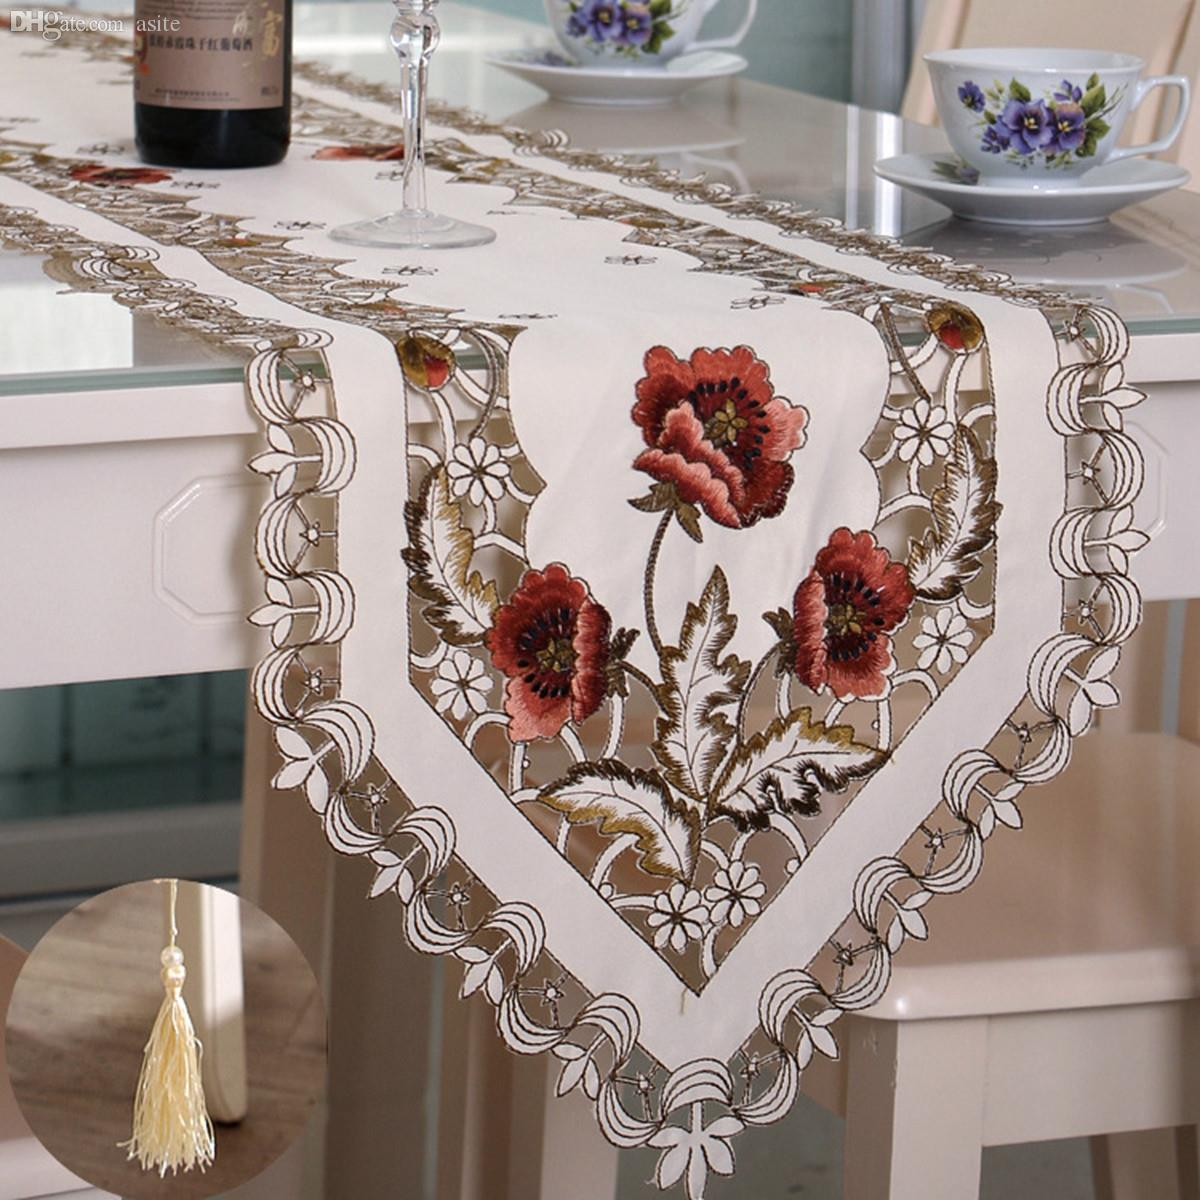 Delicieux Wholesale Elegant Polyester Embroidery Table Runner Handmade Embroidered  Flower Floral Cutwork Simple Home Table Cloth Covers Runners Cheap Table  Runner ...